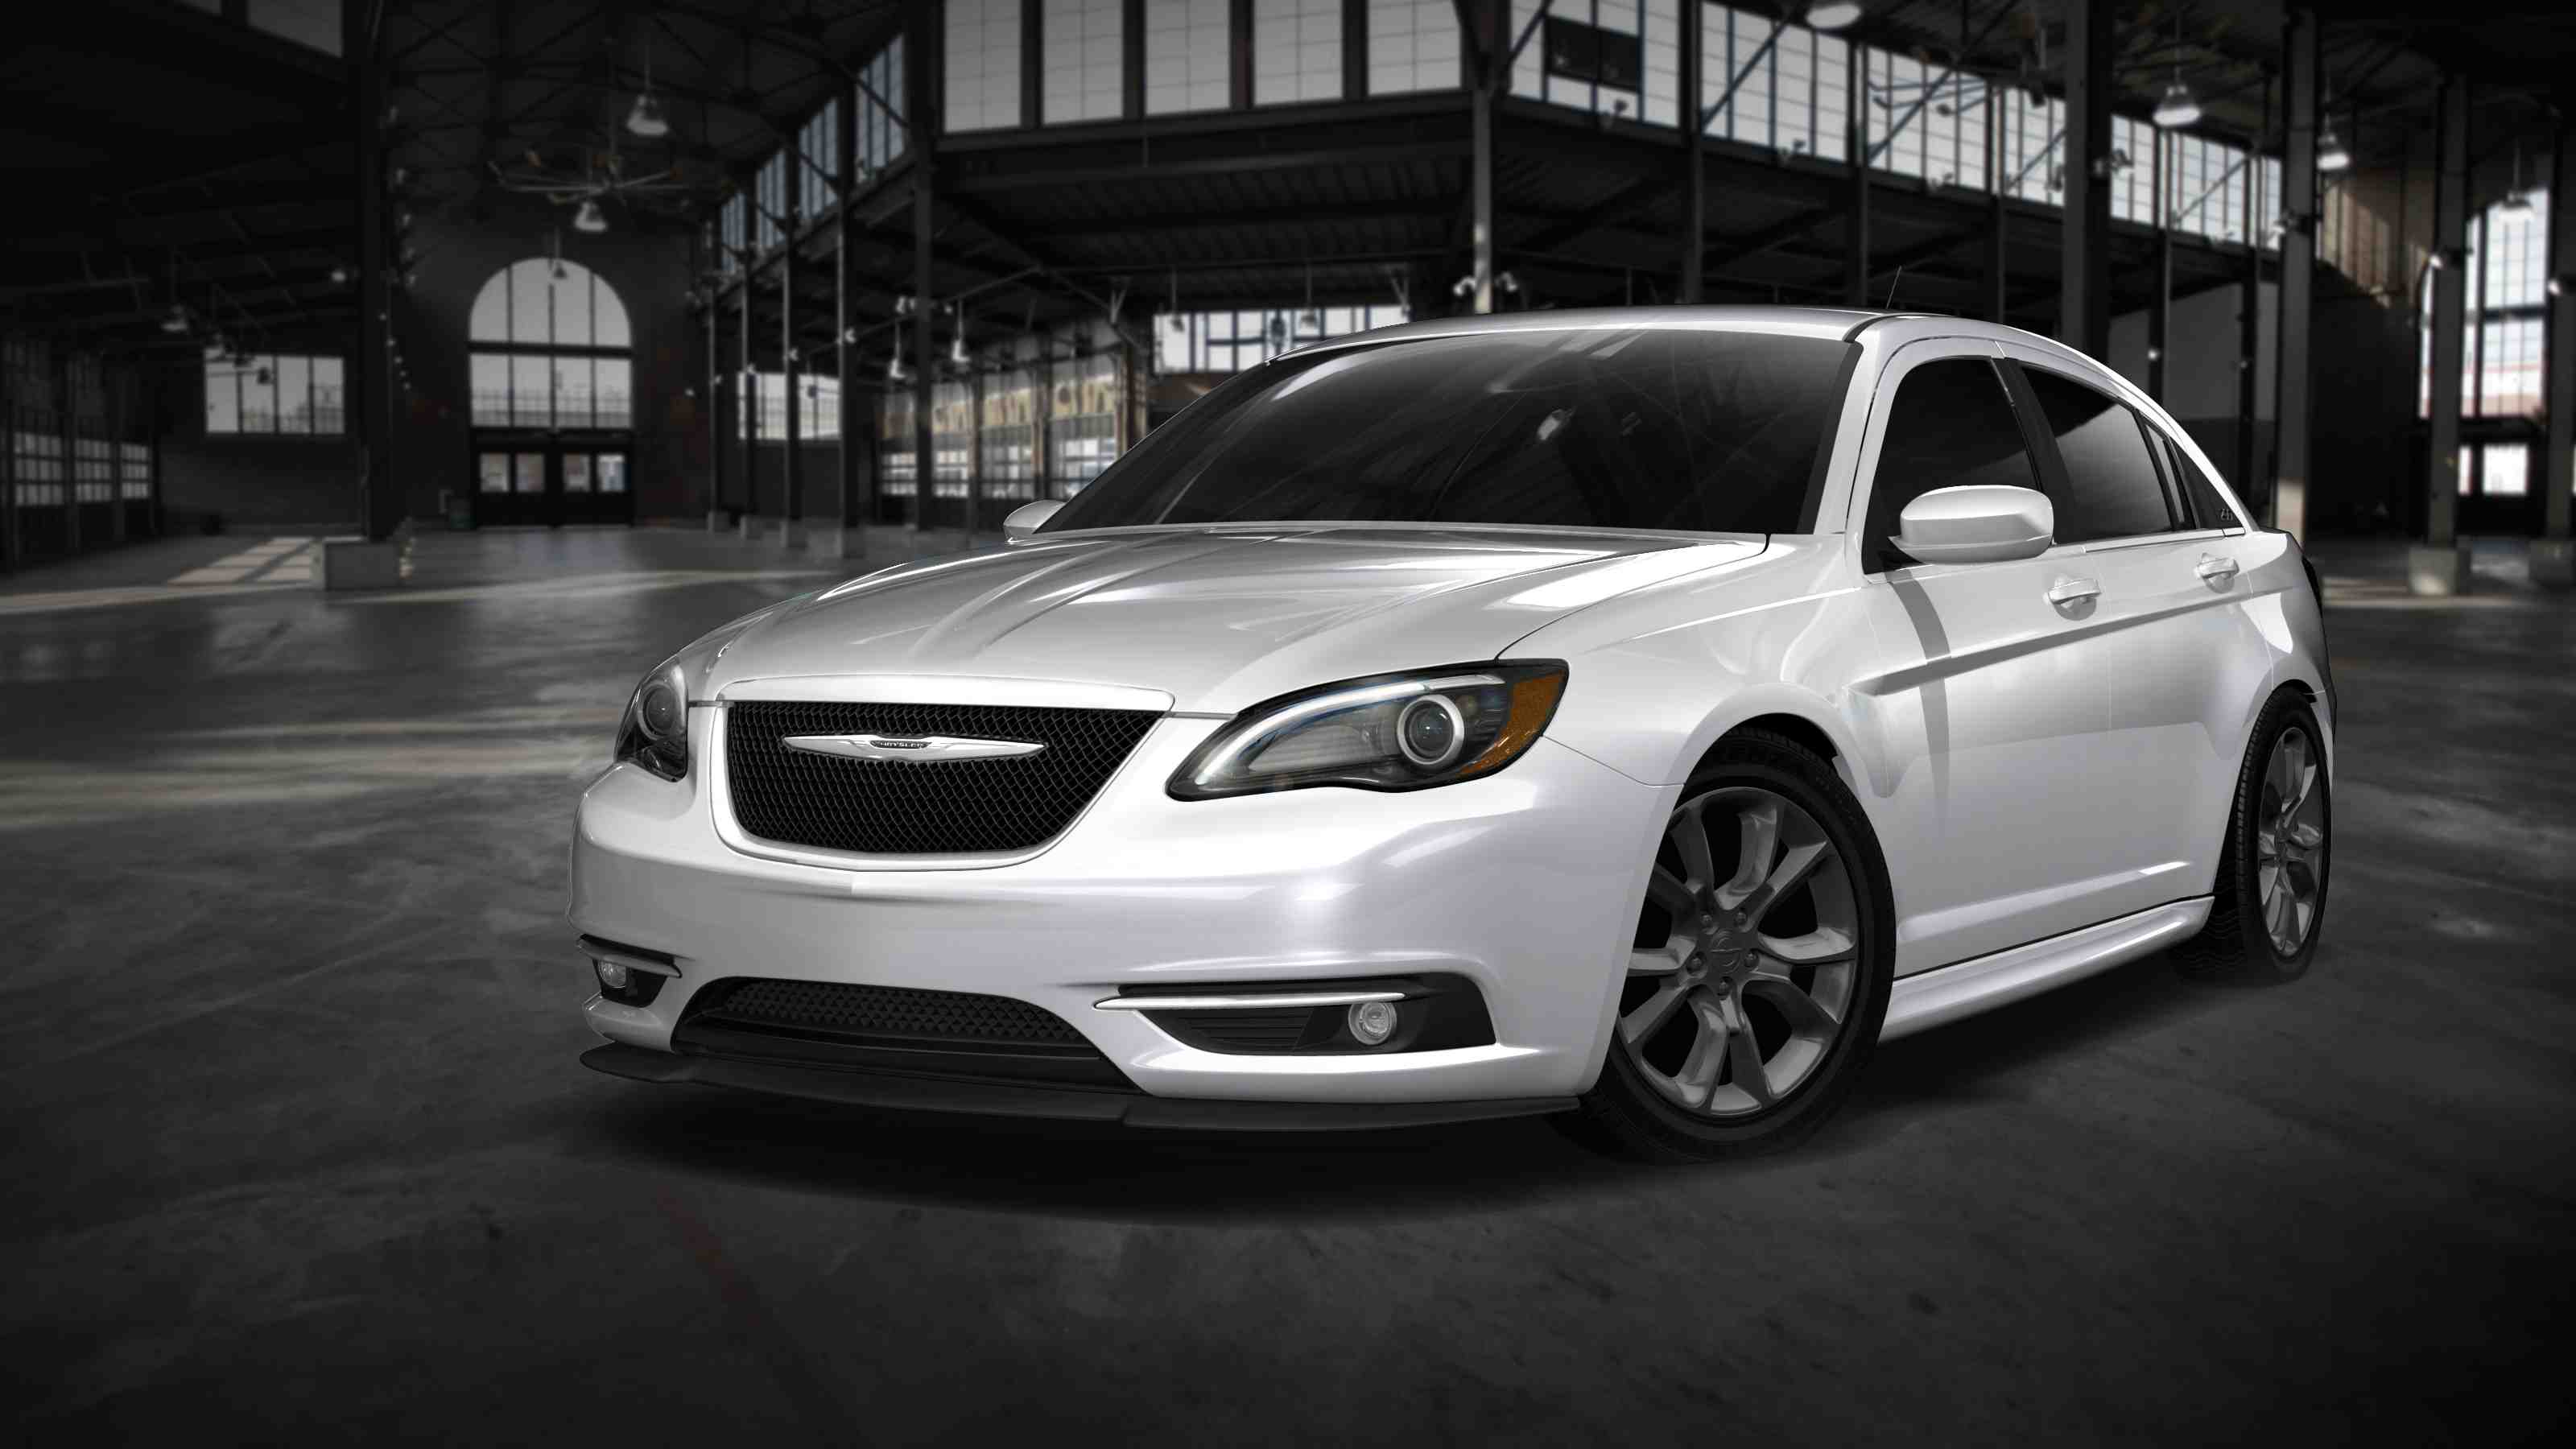 chrysler 200 super s by mopar stage one appearance